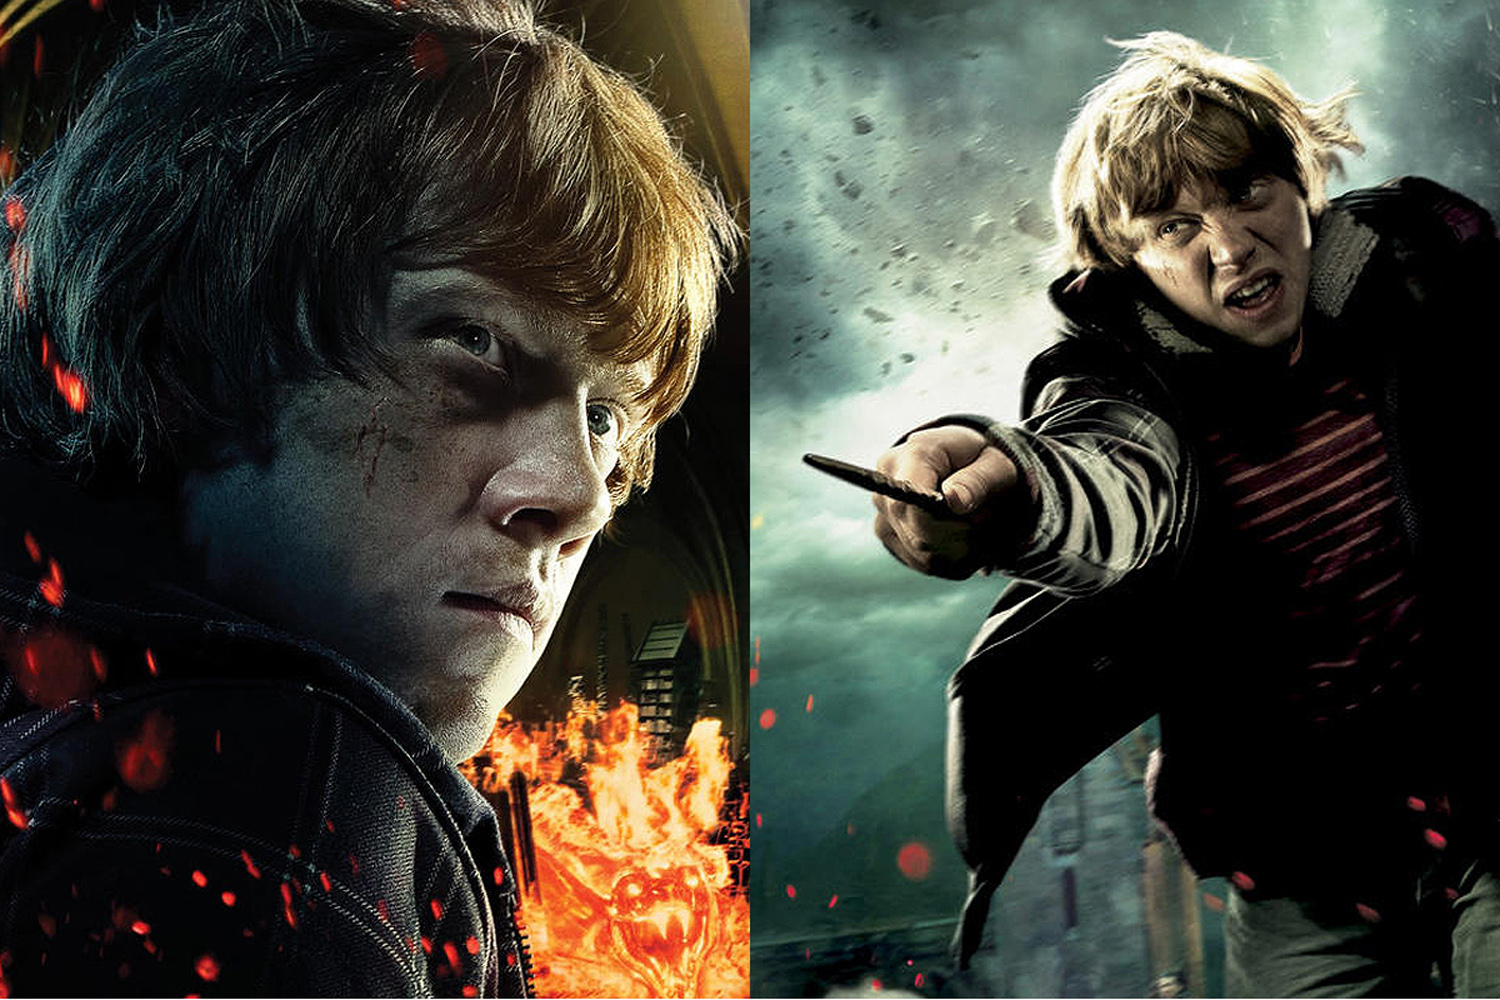 http://2.bp.blogspot.com/-HJXu1c72RhU/Tf4nWnDOmBI/AAAAAAAADlg/2nX2MWPxkt4/s1600/Rupert+Grint+Plays+Ron+for+the+Last+Time+in+Deathly+Hallows+-+Part+2.jpg